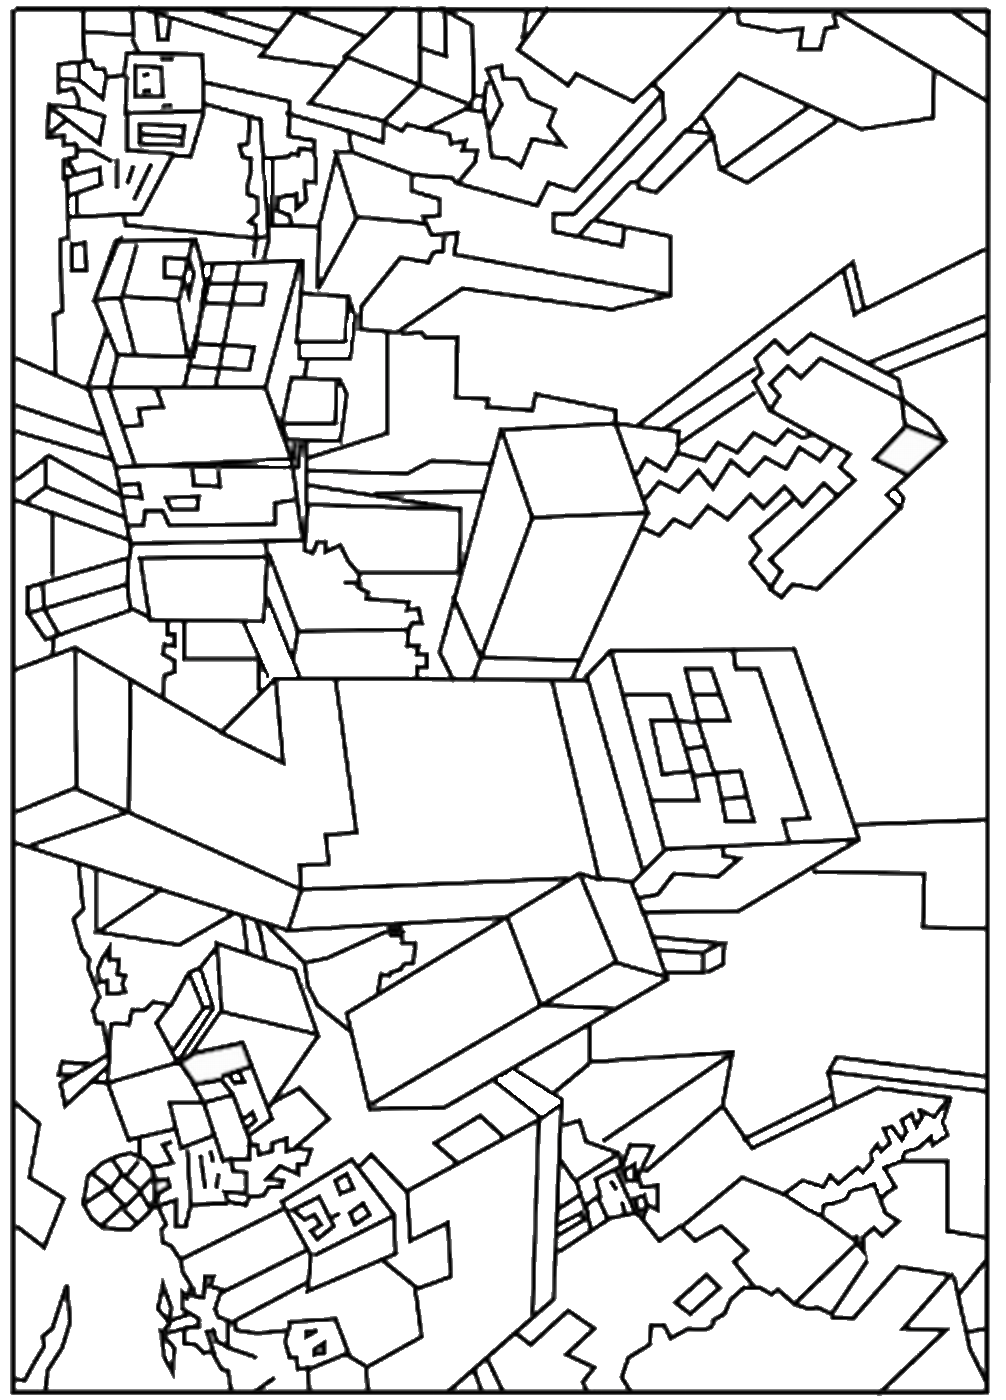 It's just a photo of Punchy Minecraft Coloring Pages Free